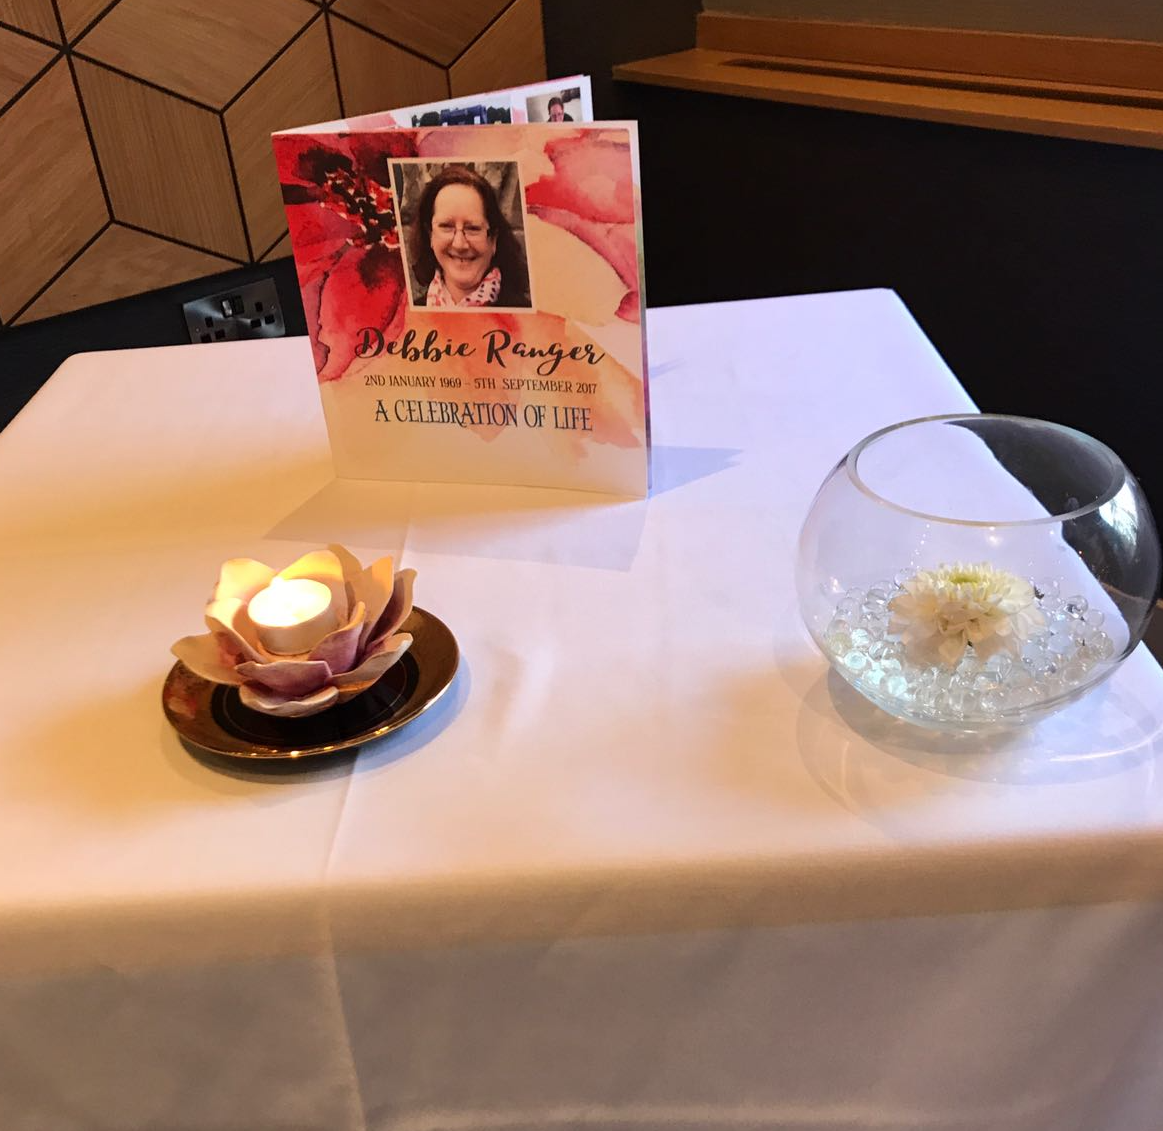 I had this table set up at my wedding service on 30 September to remember my friend Debbie who would have been there.